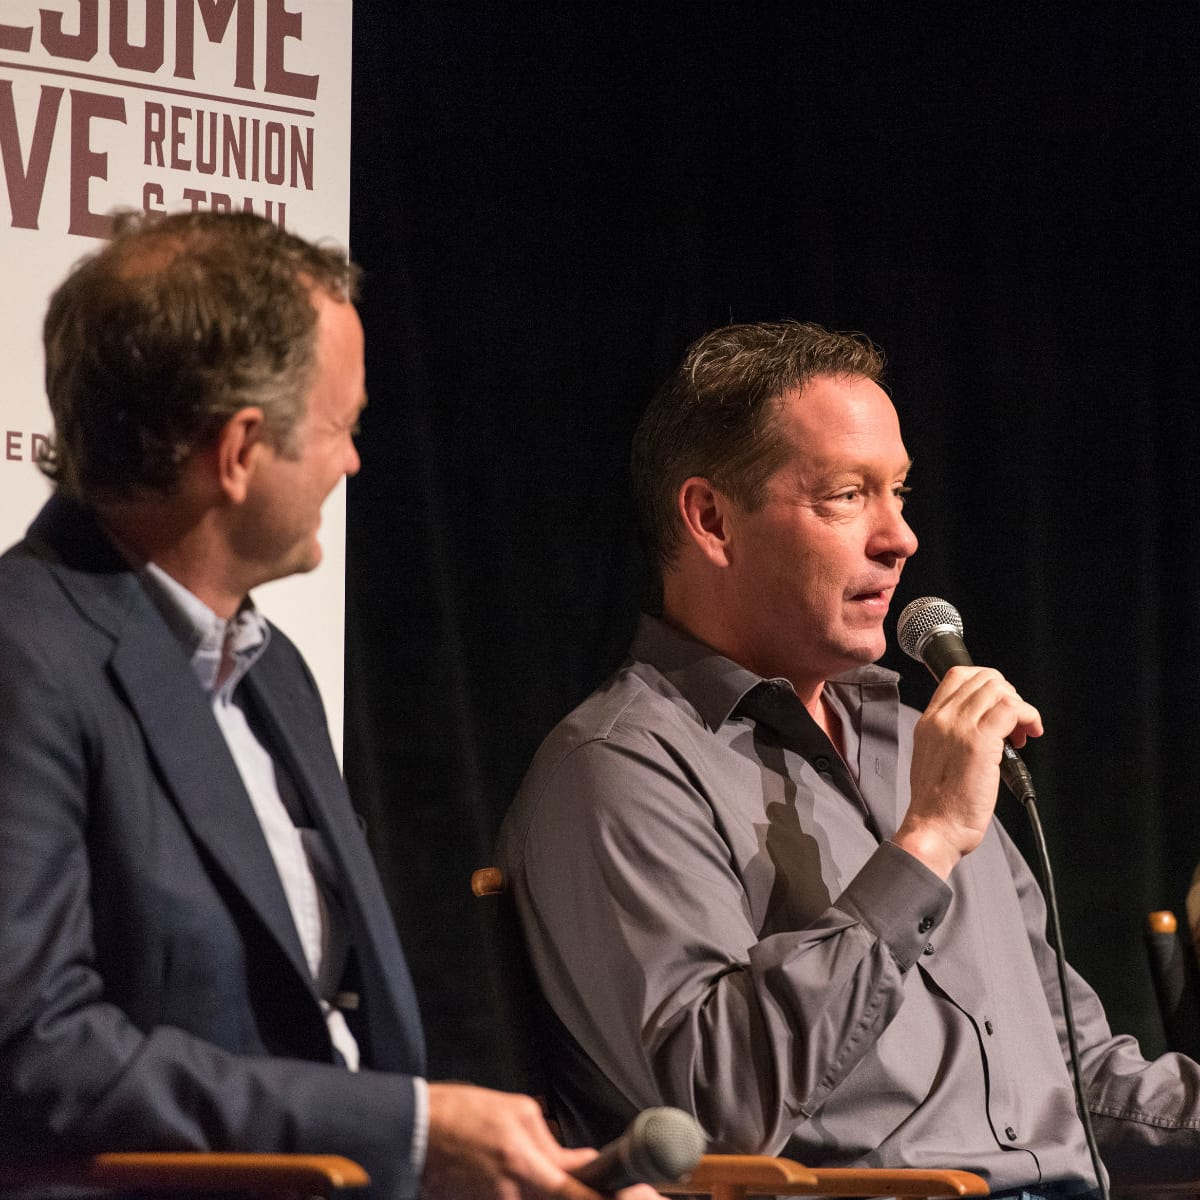 D.B. Sweeney at Lonesome Dove Reunion